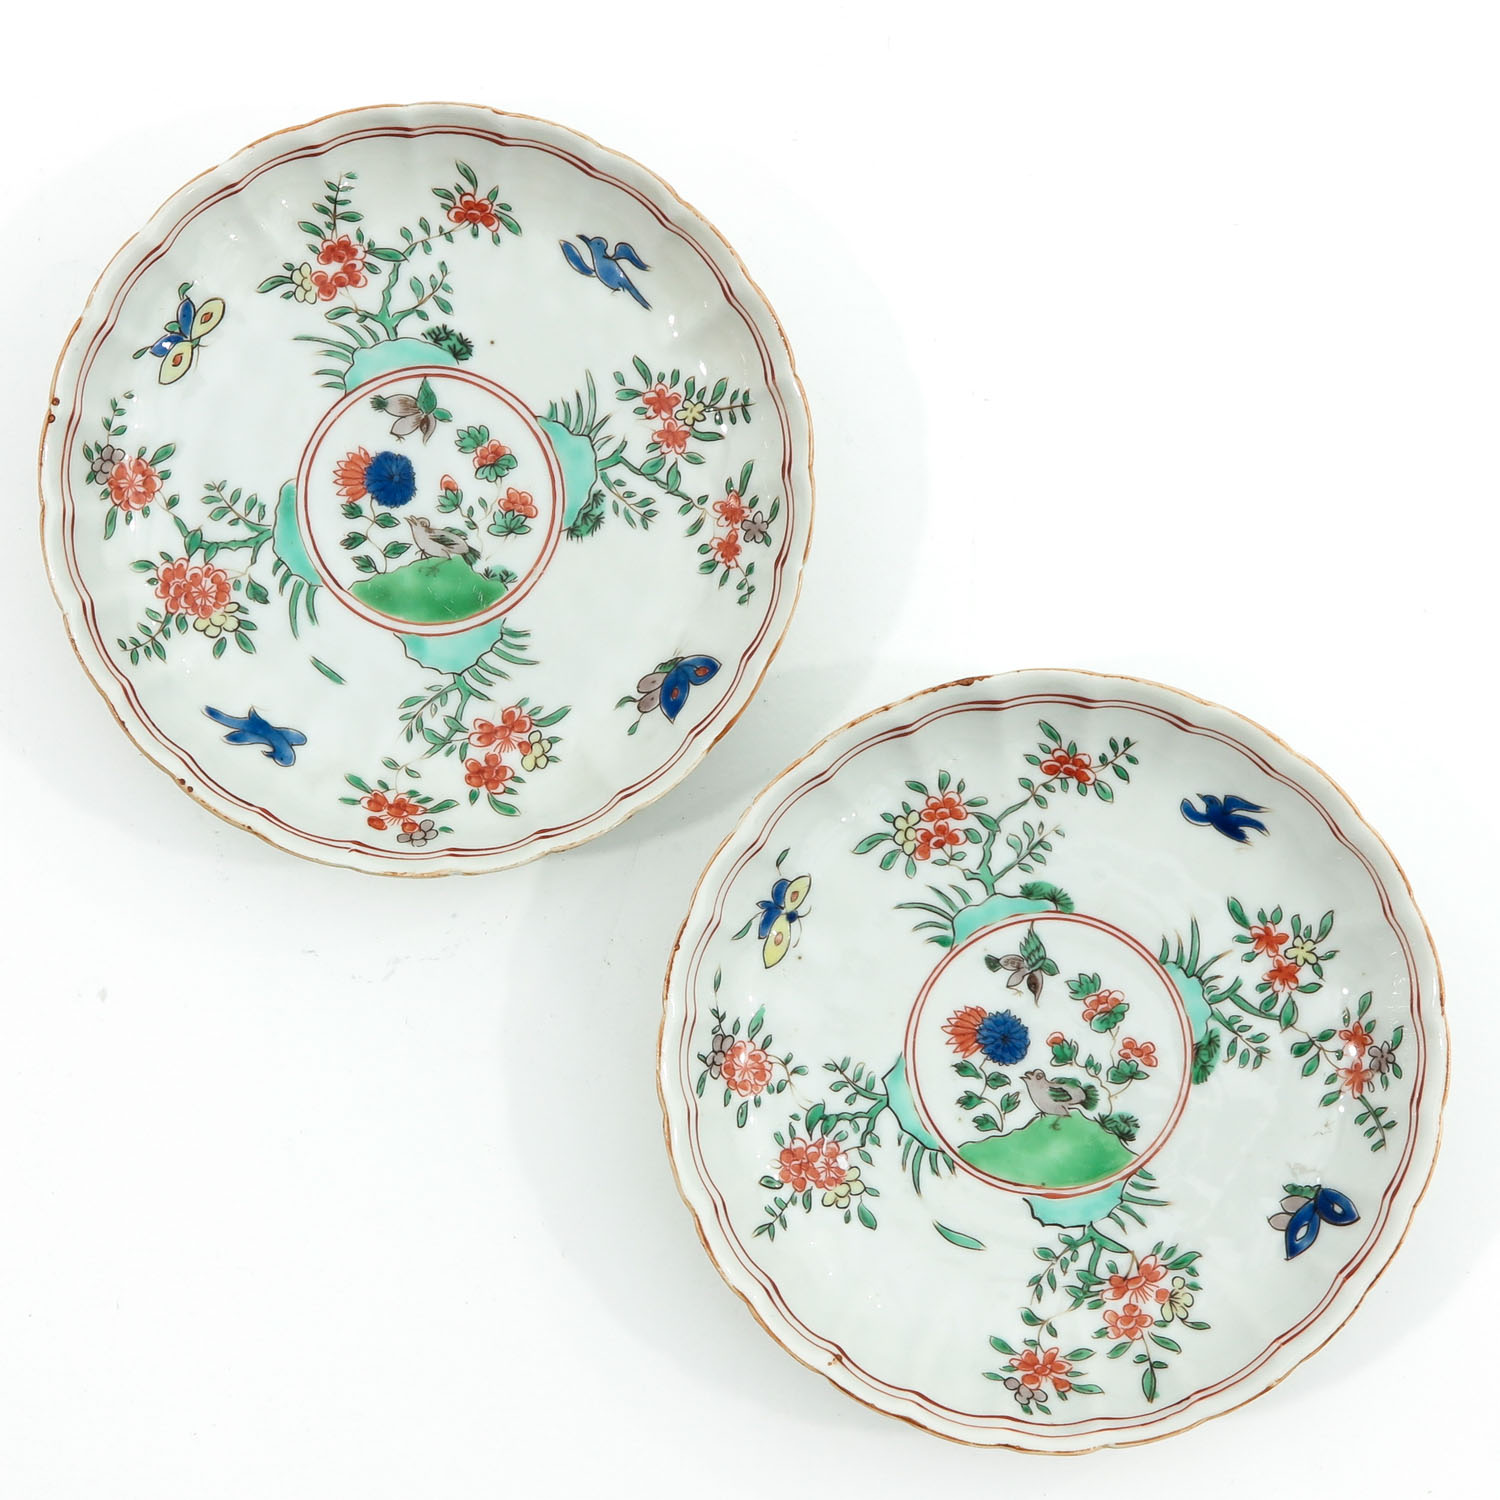 A Lot of 7 Small Plates - Image 7 of 10